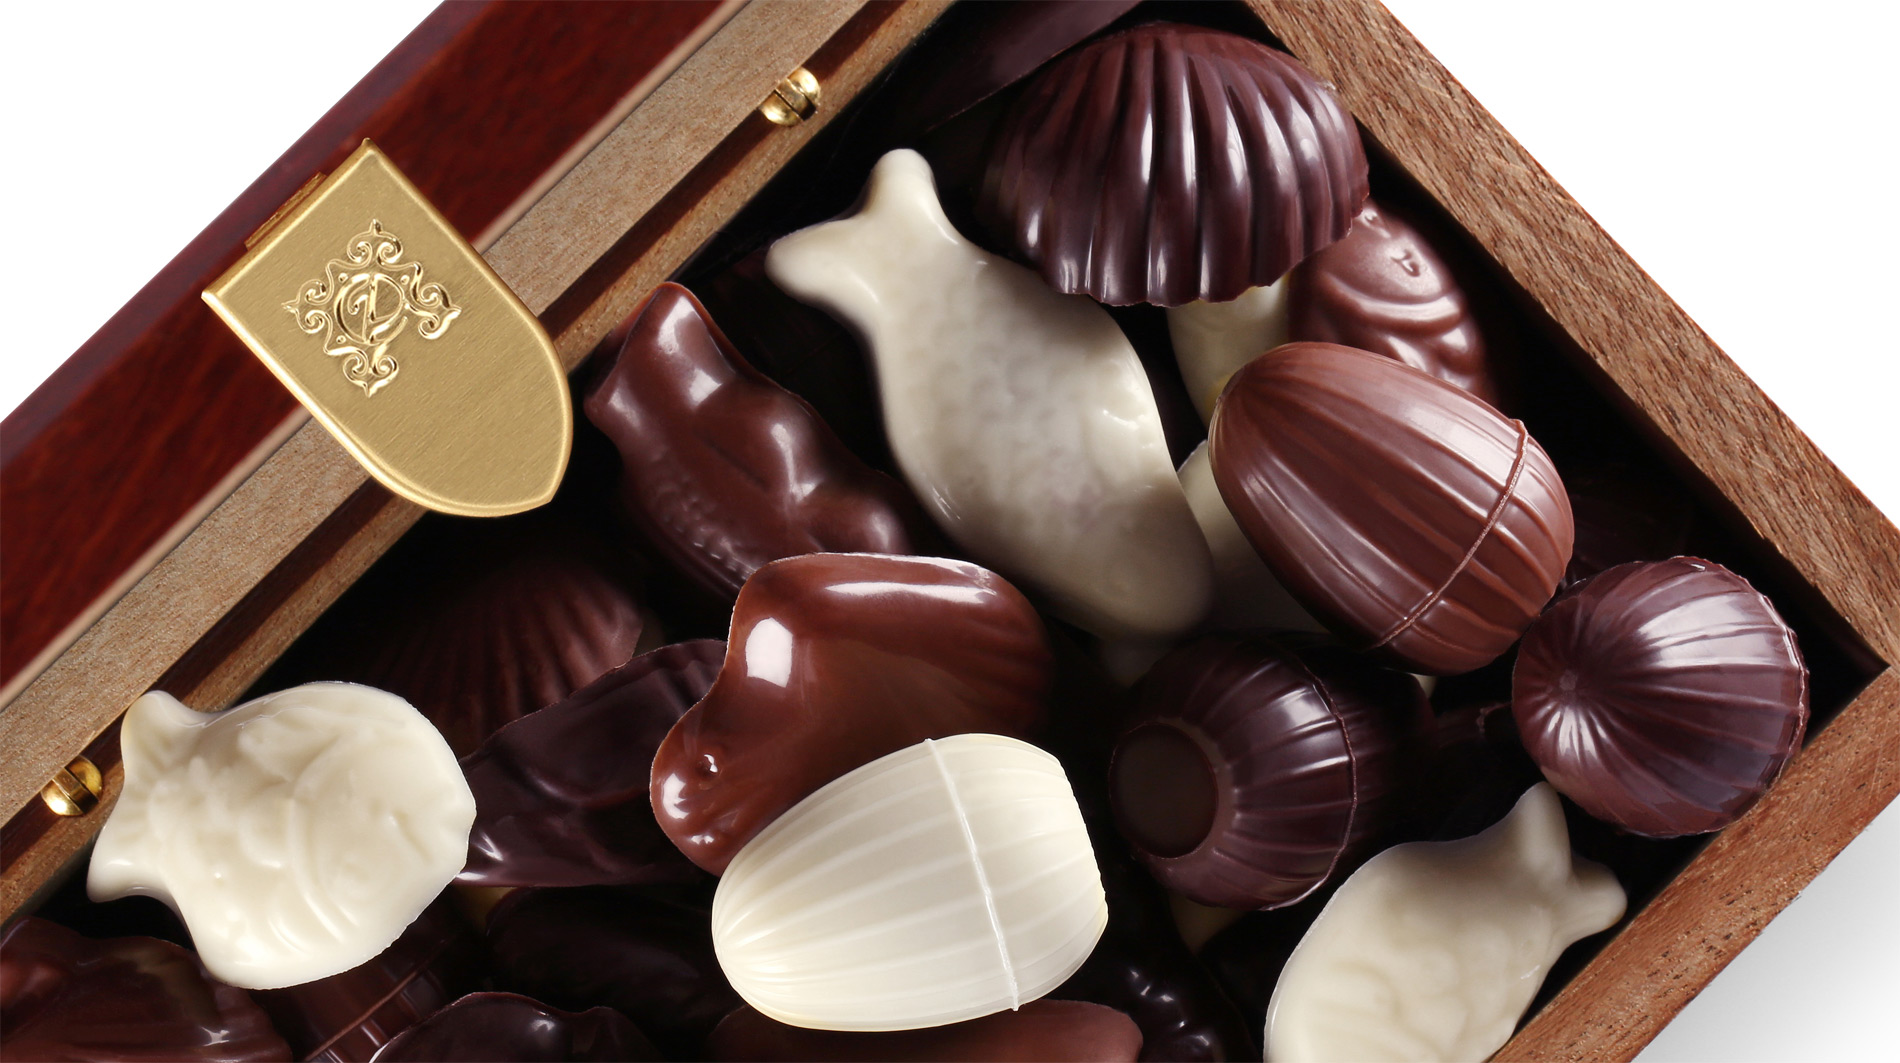 zChocolate Releases Limited Run Of Their Exceptional Easter Paralines